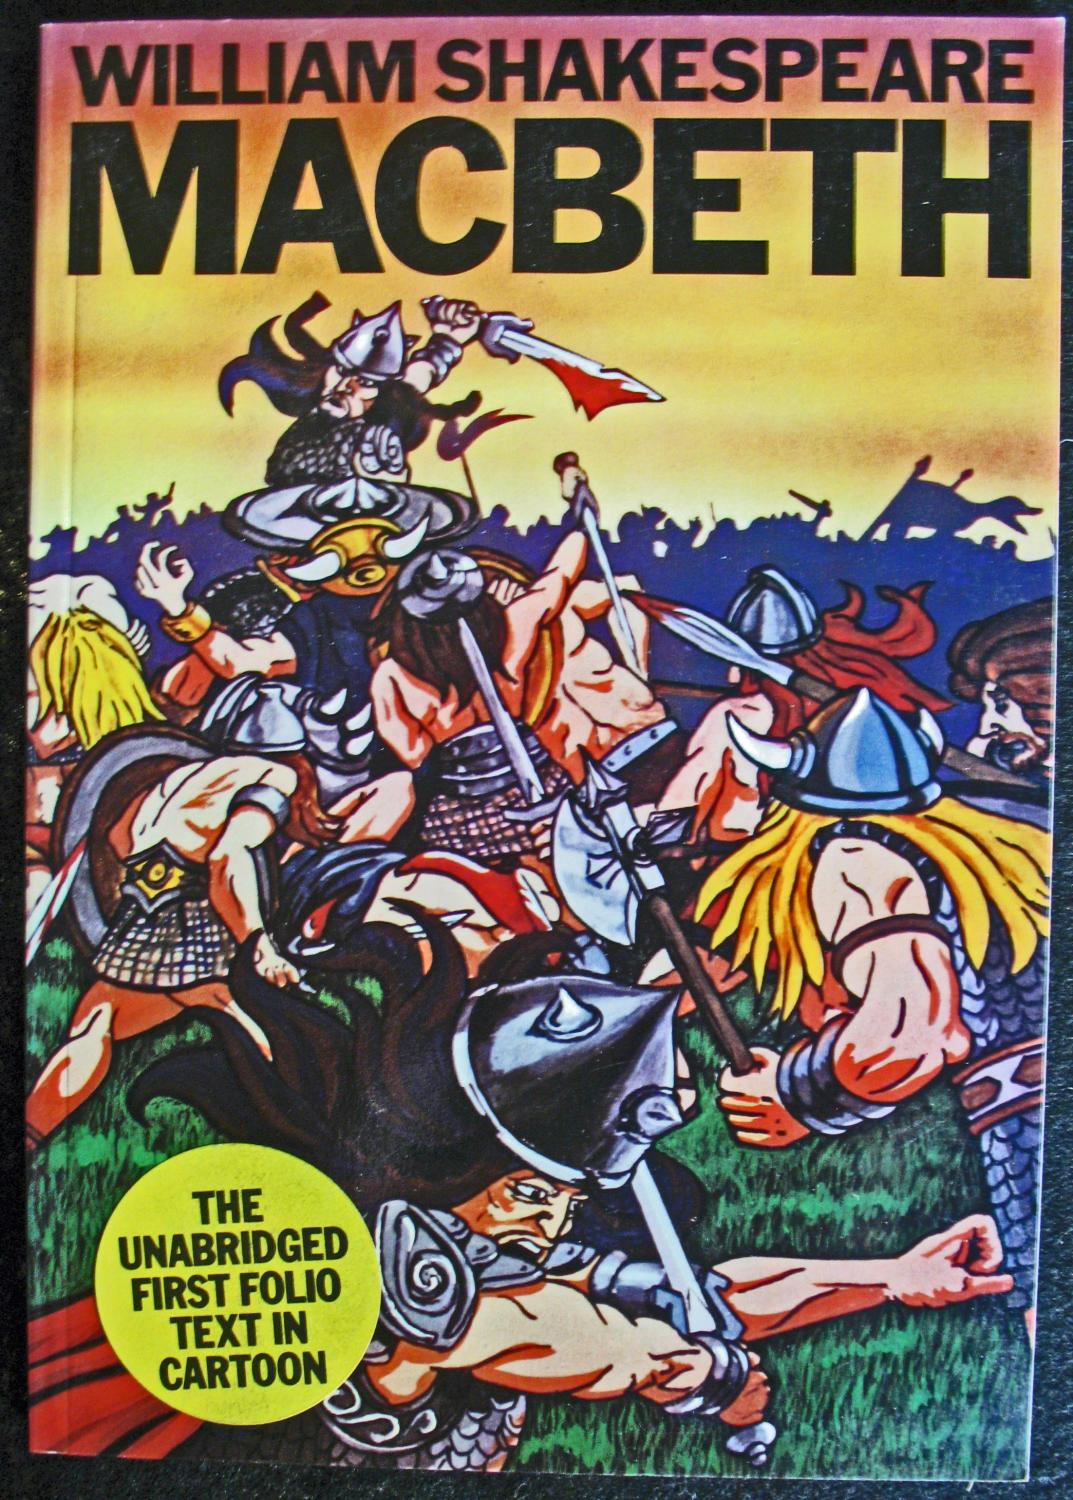 the reasons for the tragic downfall of macbeth in william shakespeares macbeth The main character in the play macbeth', written by william shakespeare, wasmacbeth in the play, macbeth suffered a failure in the end with his wife lady macbeth the cause of it was mainly his overwhelming ambitions and greed macbeth's main intention was plotting to be king of scotland and.